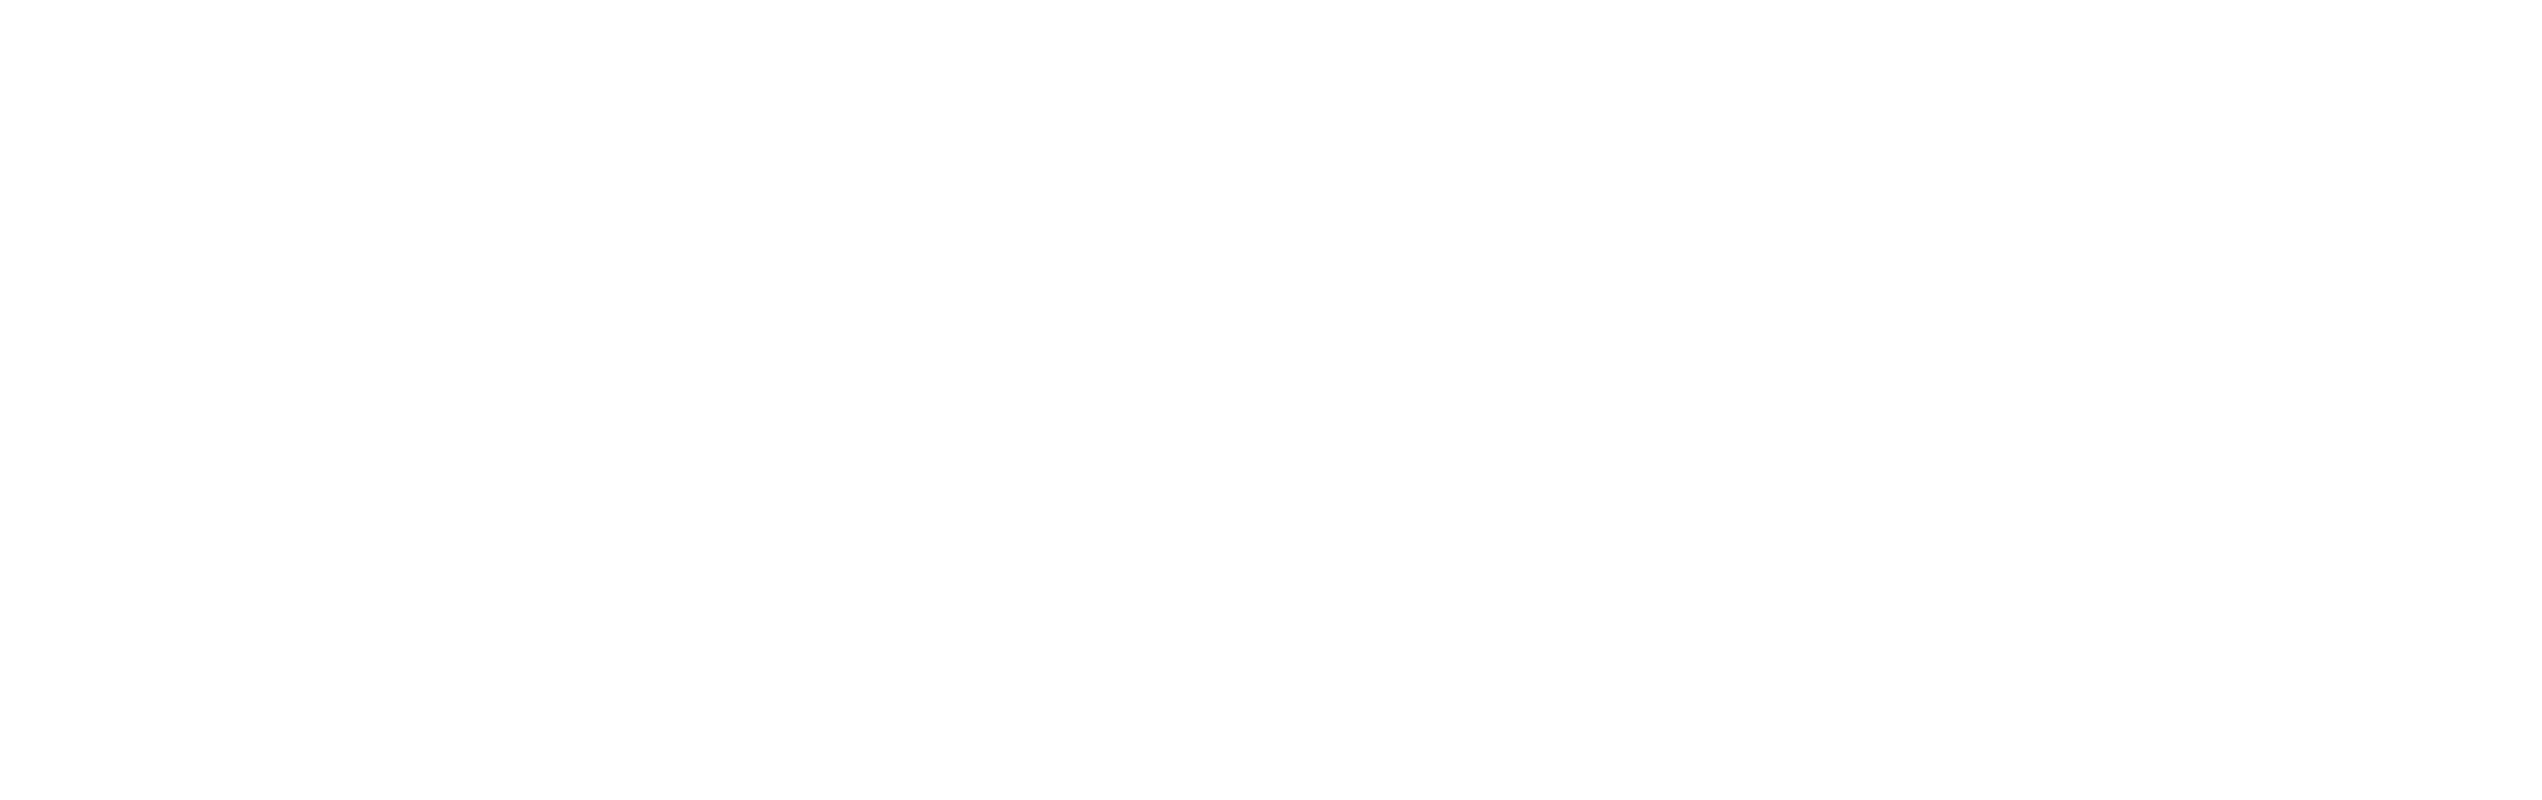 Qualys-Light-01